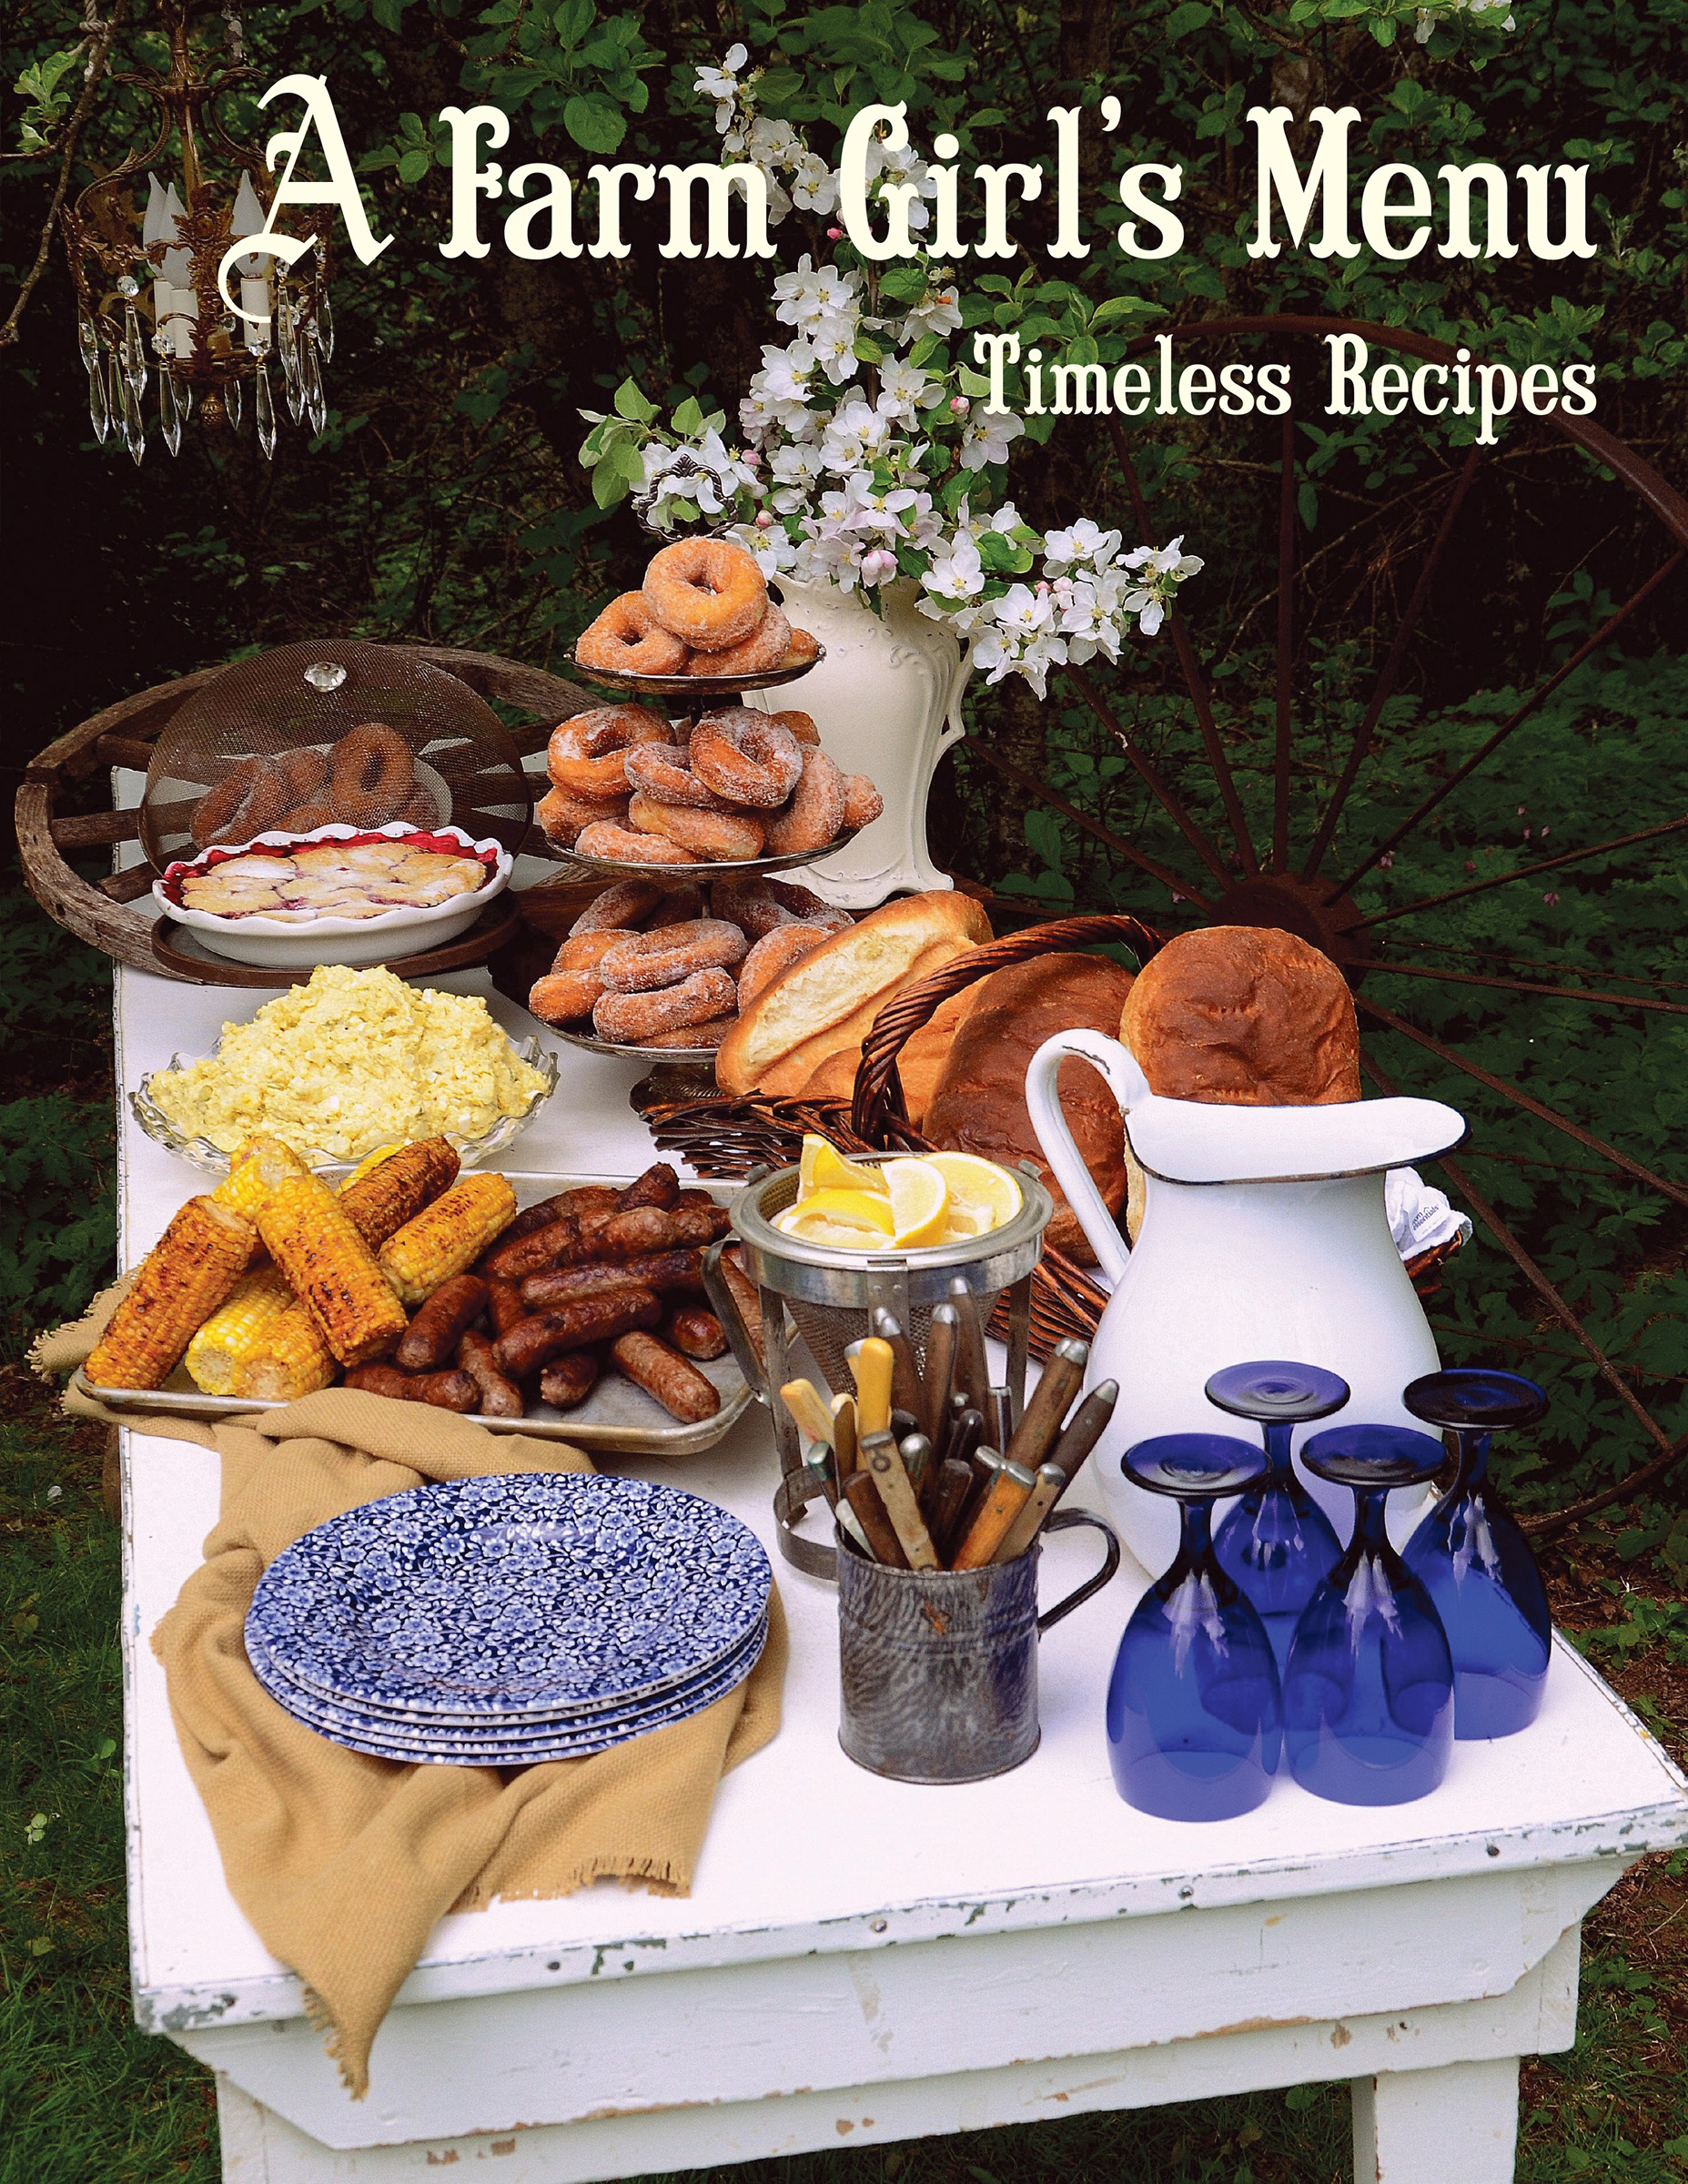 A Farm Girl's Menu: Timeless Recipes